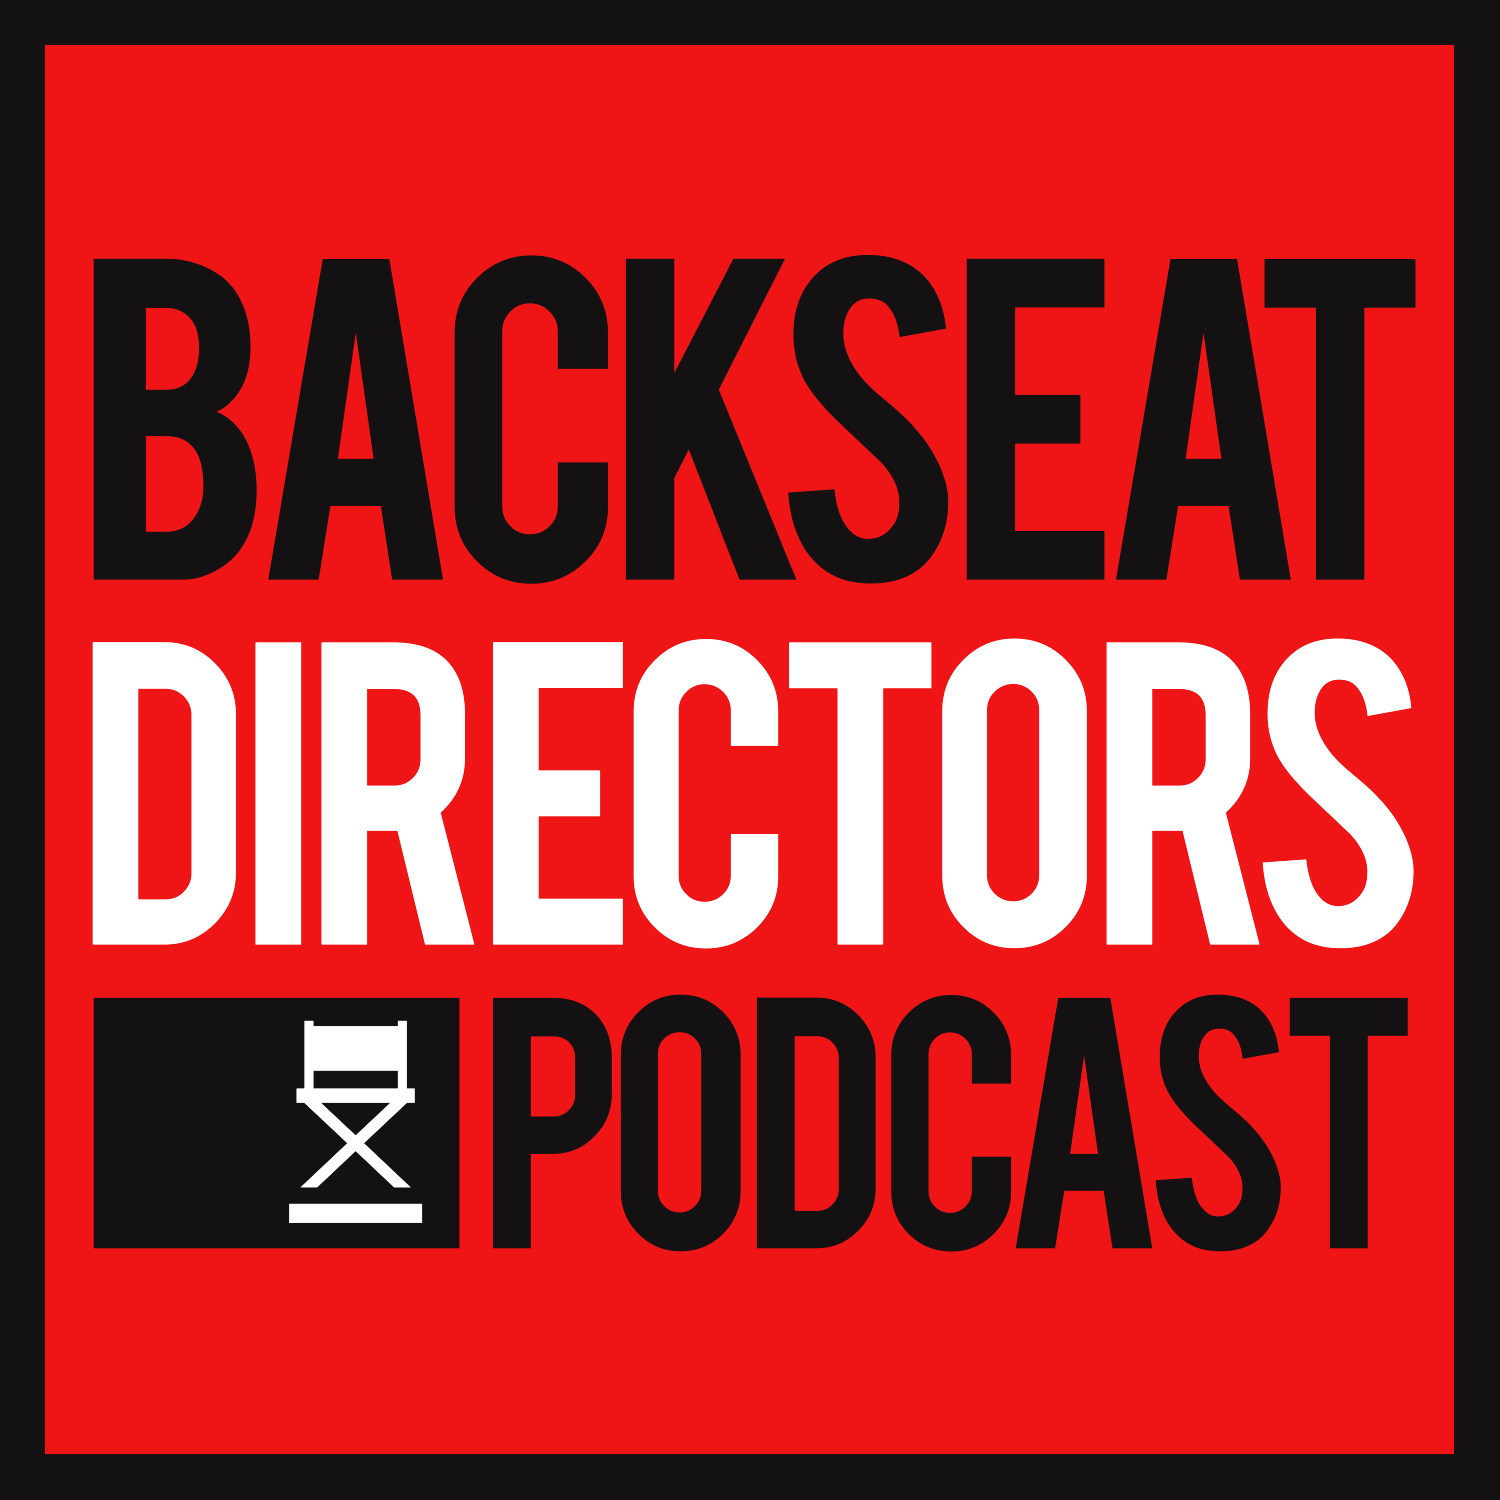 Backseat Directors